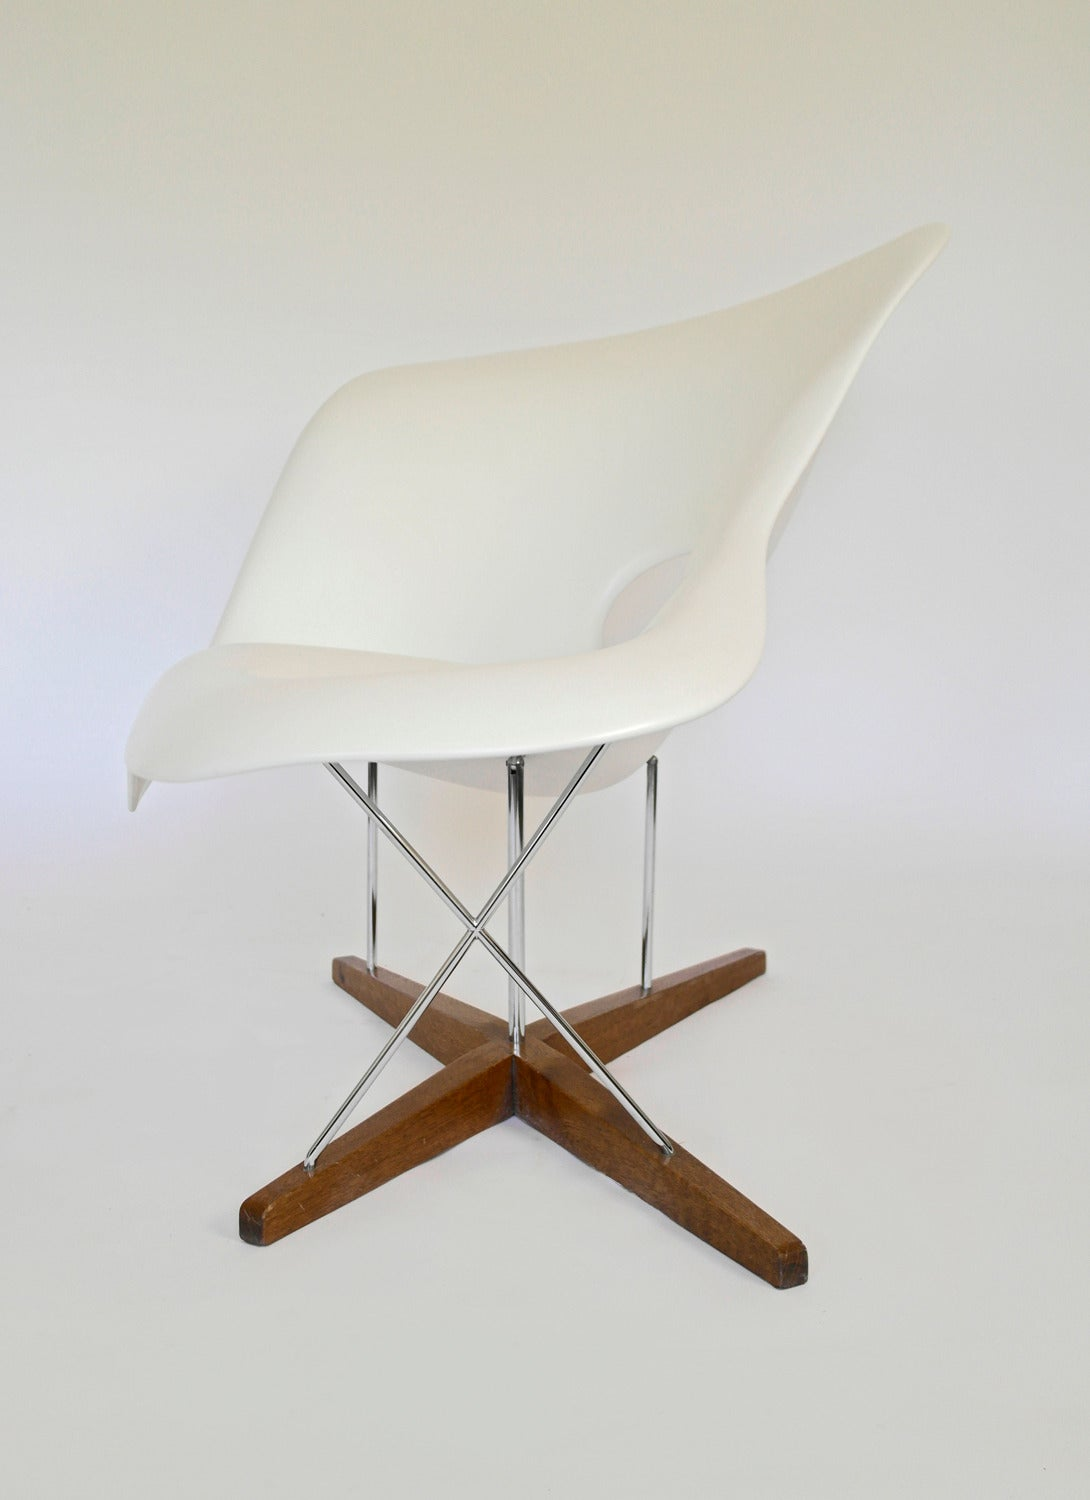 Vitra edition la chaise by charles and ray eames for sale at 1stdibs - Charles eames chaise ...